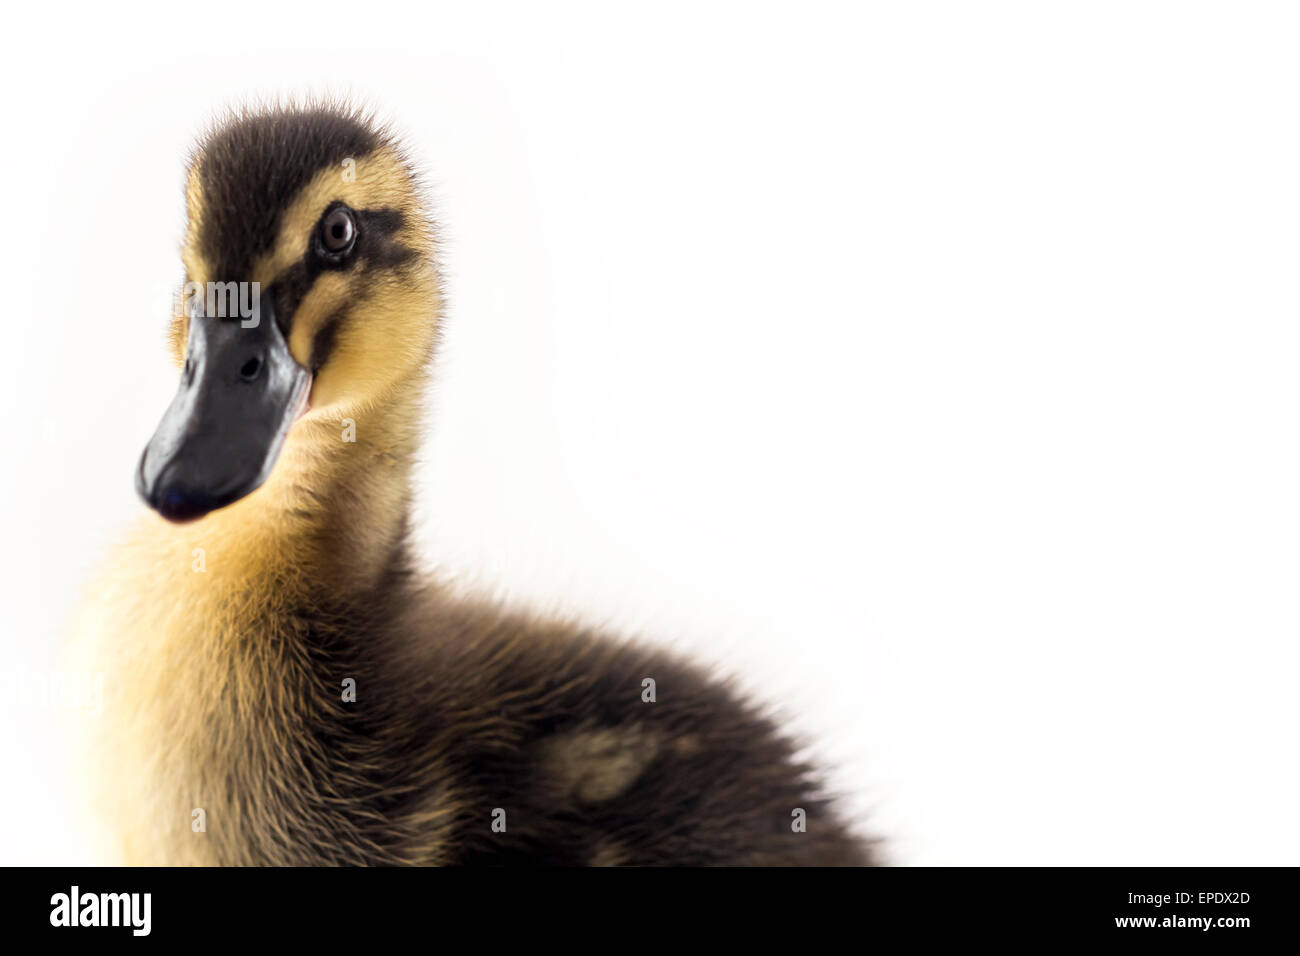 American pekin duckling and  in studio shot photo. This yellow duckling is domesticated for egg production - Stock Image